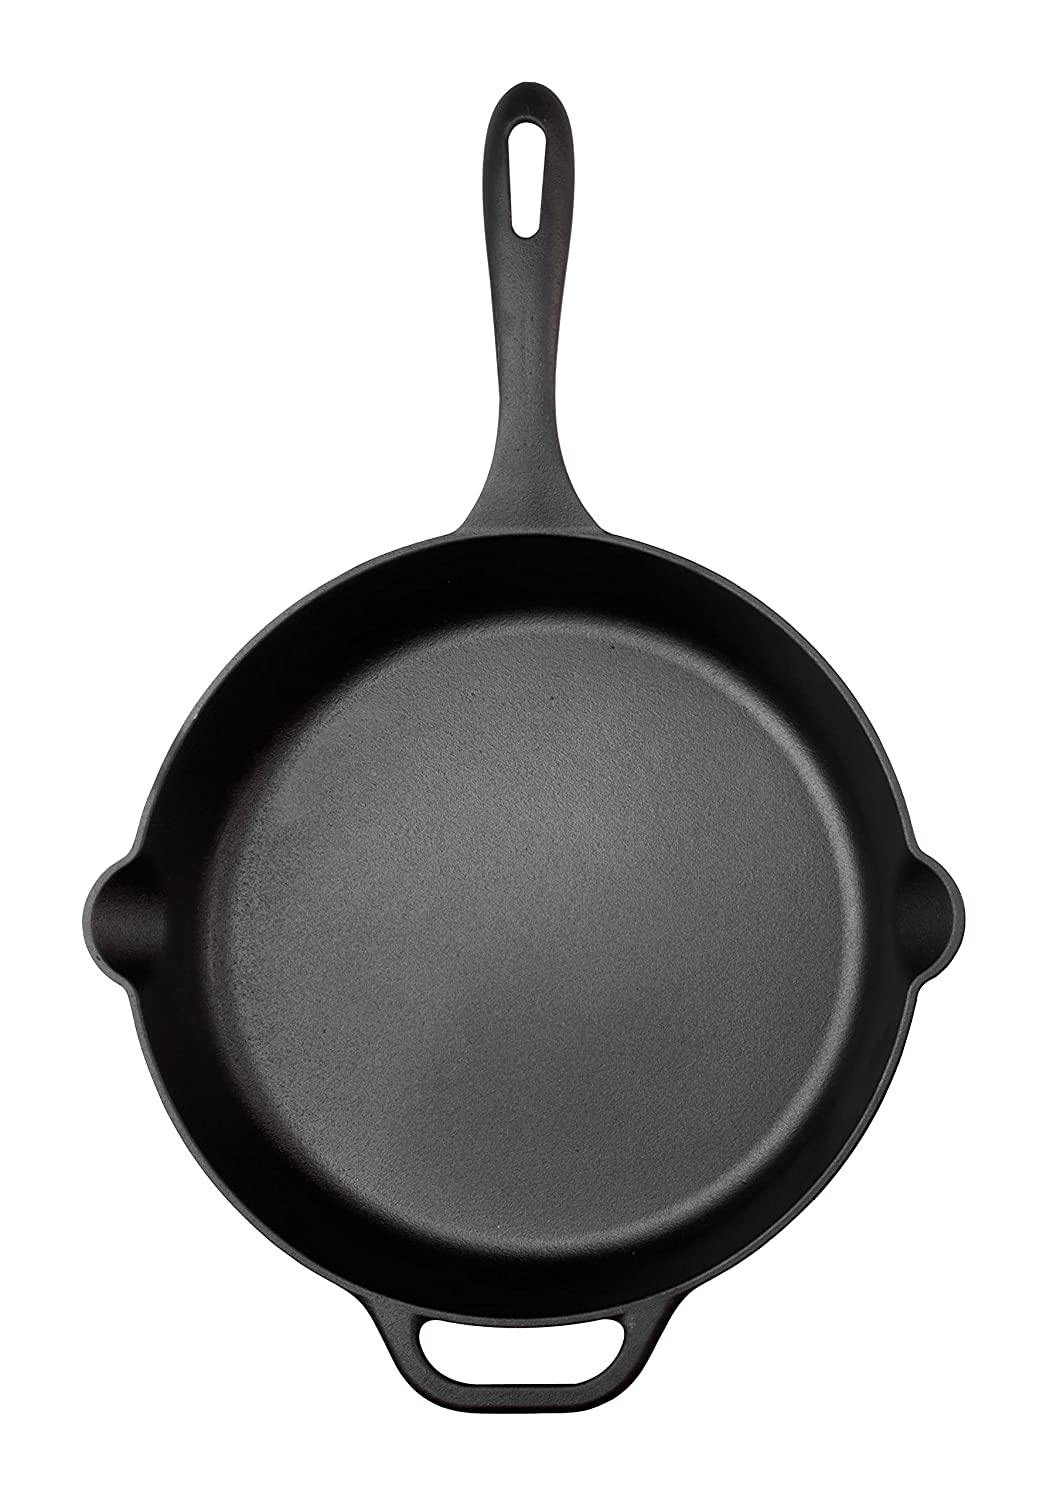 Victoria SKL-212 Cast Iron Skillet Large Frying Pan Helper Handle Seasoned with 100 Kosher Certified Non-GMO Flaxseed Oil, 12 Inch, Black